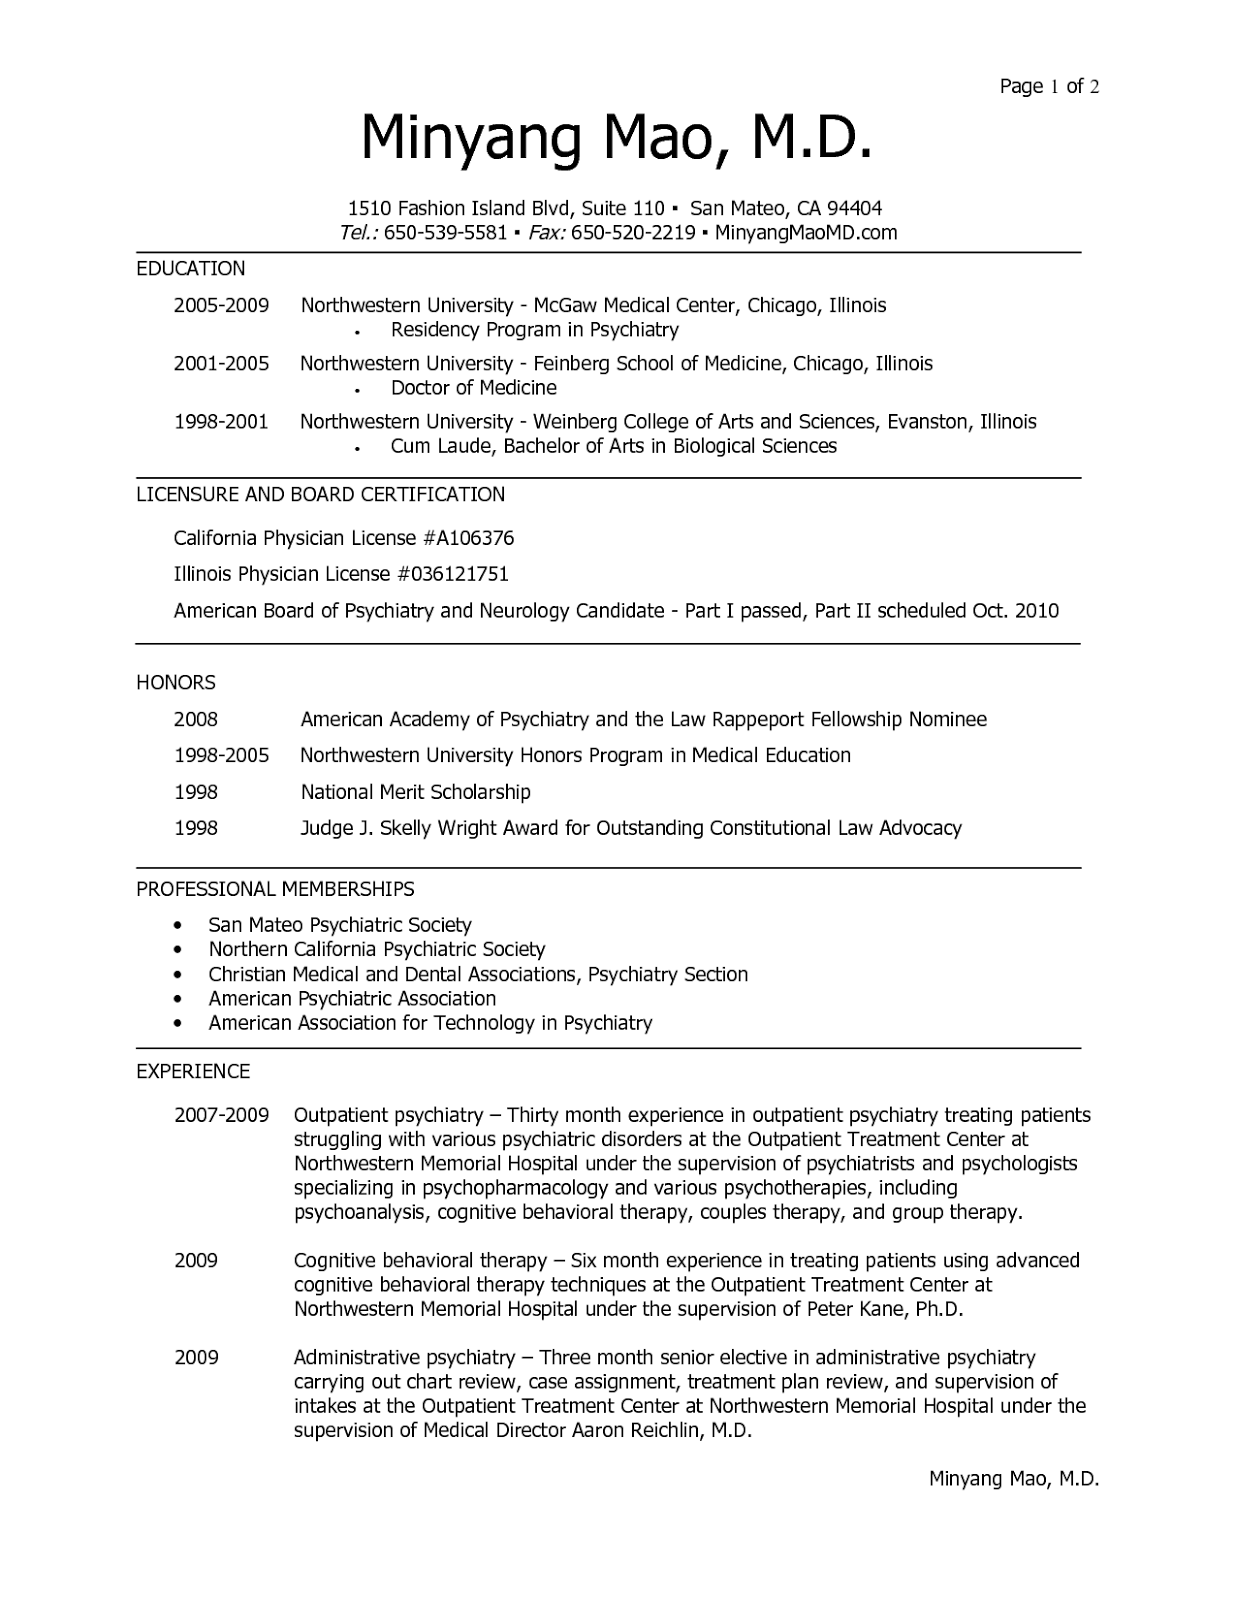 sample medical student resume - Medical Billing Resume Examples